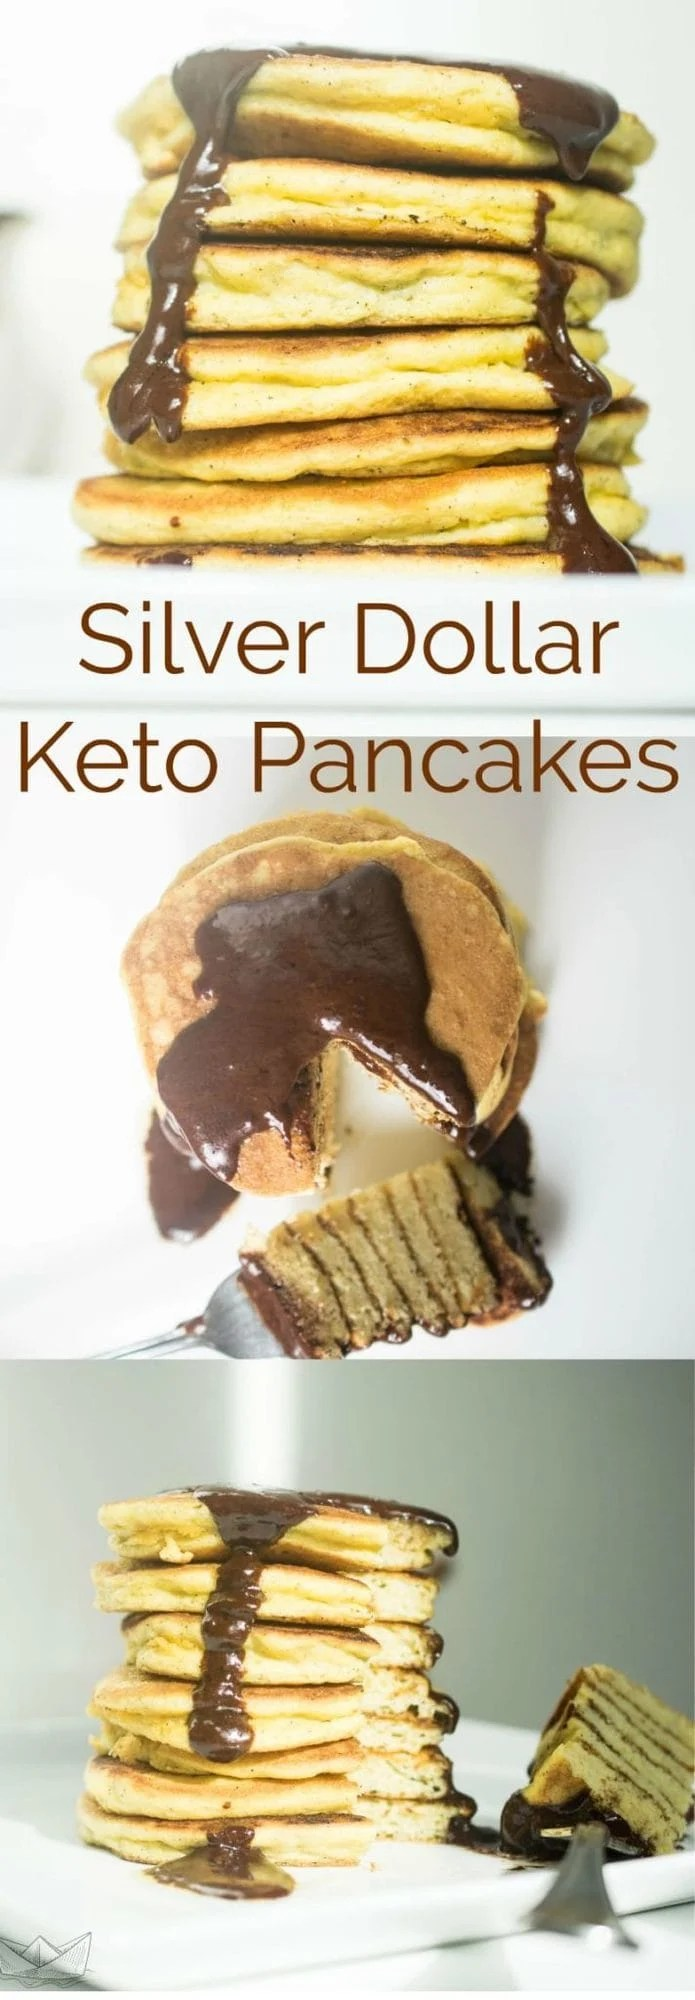 Silver Dollar Keto Pancakes | Peace Love and Low Carb #keto #lowcarb #pancakes #lchf #hflc #recipes